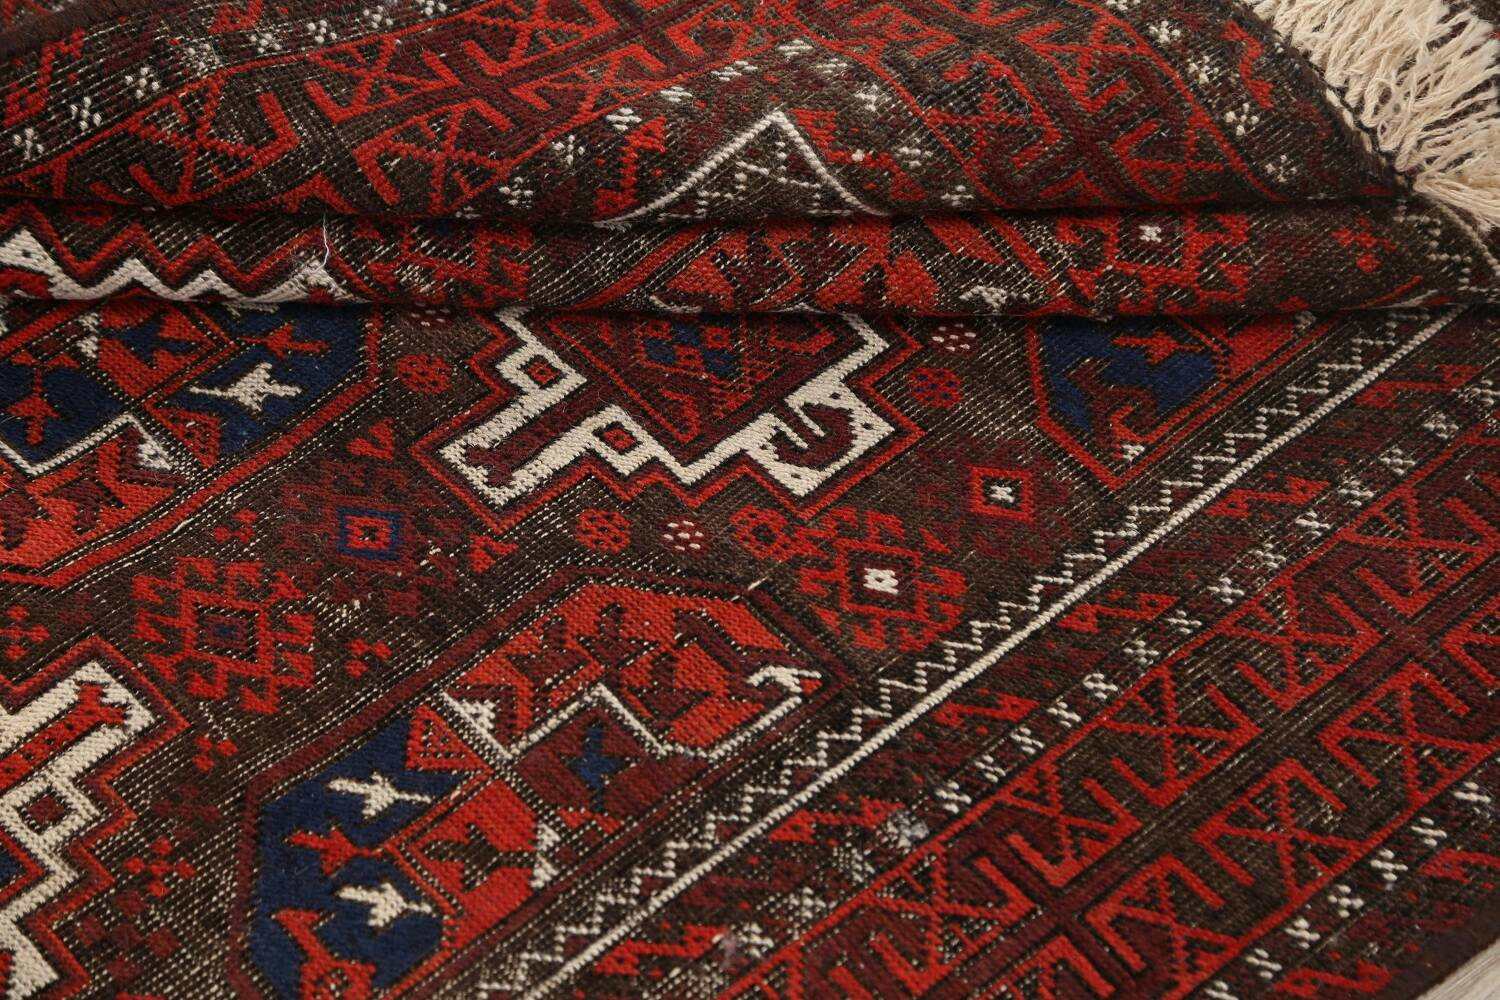 Antique Afghan Balouch Oriental Area Rug 4x7 image 13